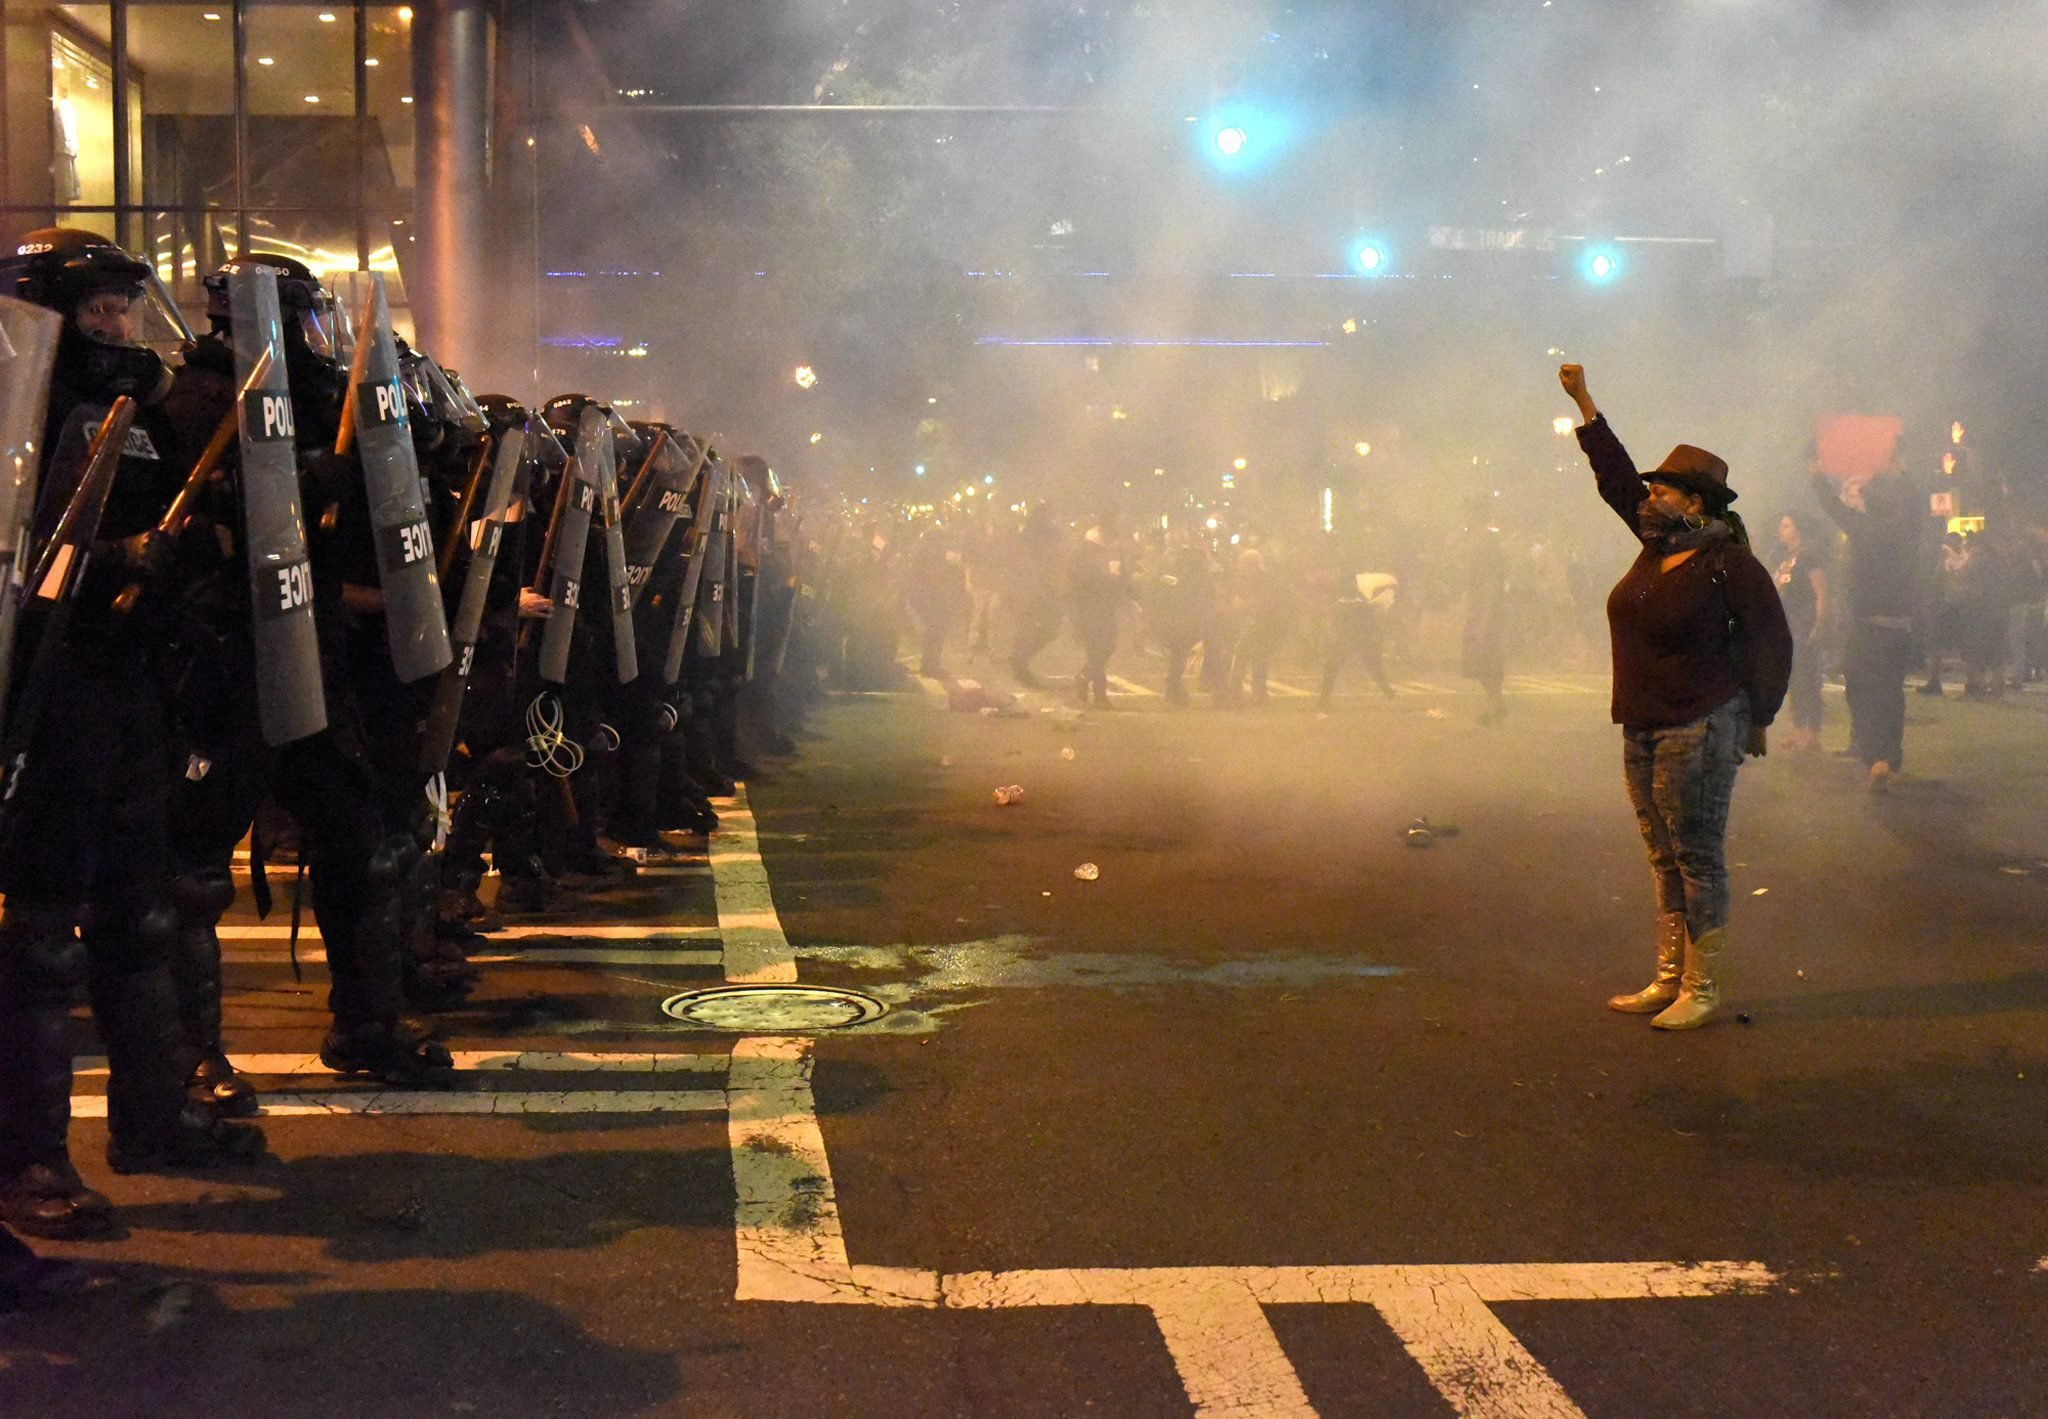 A protester raises her fist as she confronts police officers in Charlotte, N.C., on Sept. 21, 2016. Police and protesters clashed following the fatal police shooting of Keith L. Scott,  a black man.